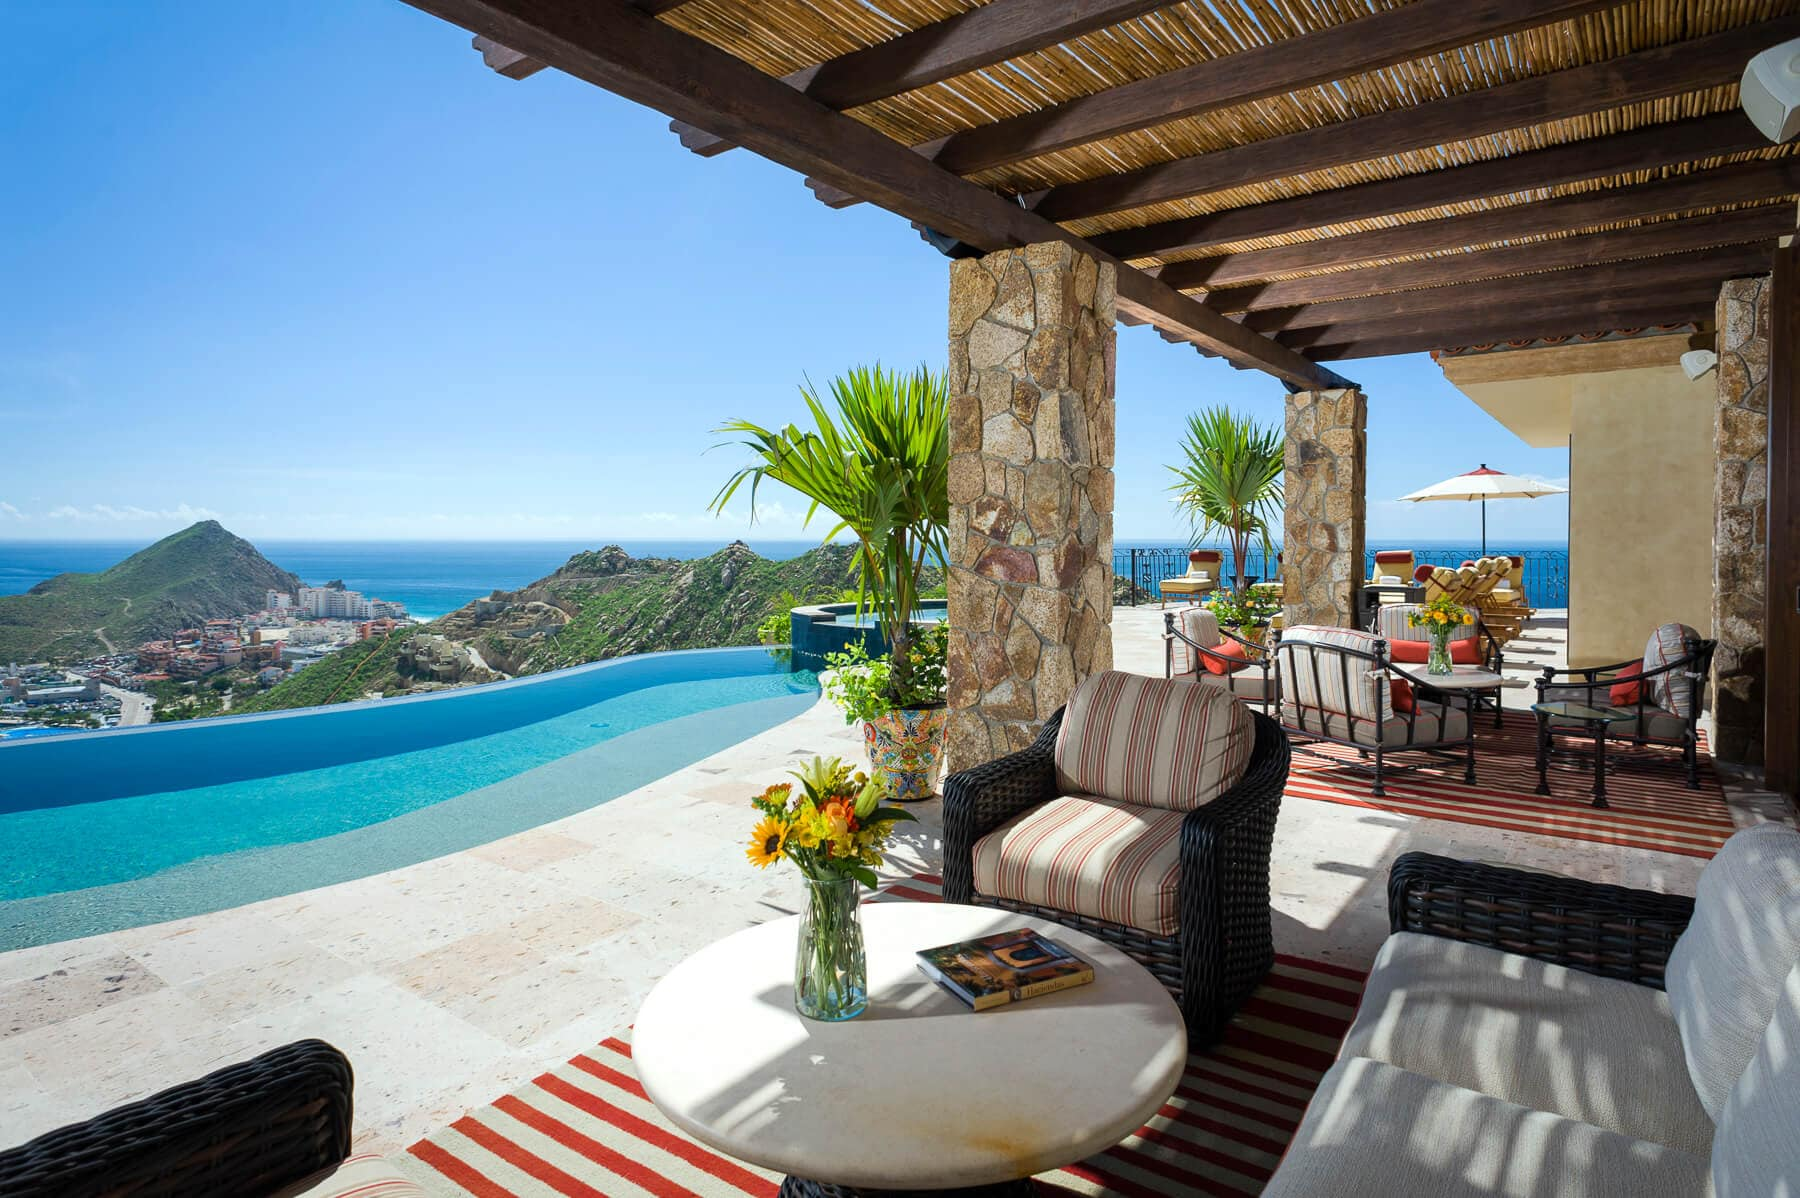 Property Image 2 - Idyllic Hillside Getaway in Pedregal for Large Groups